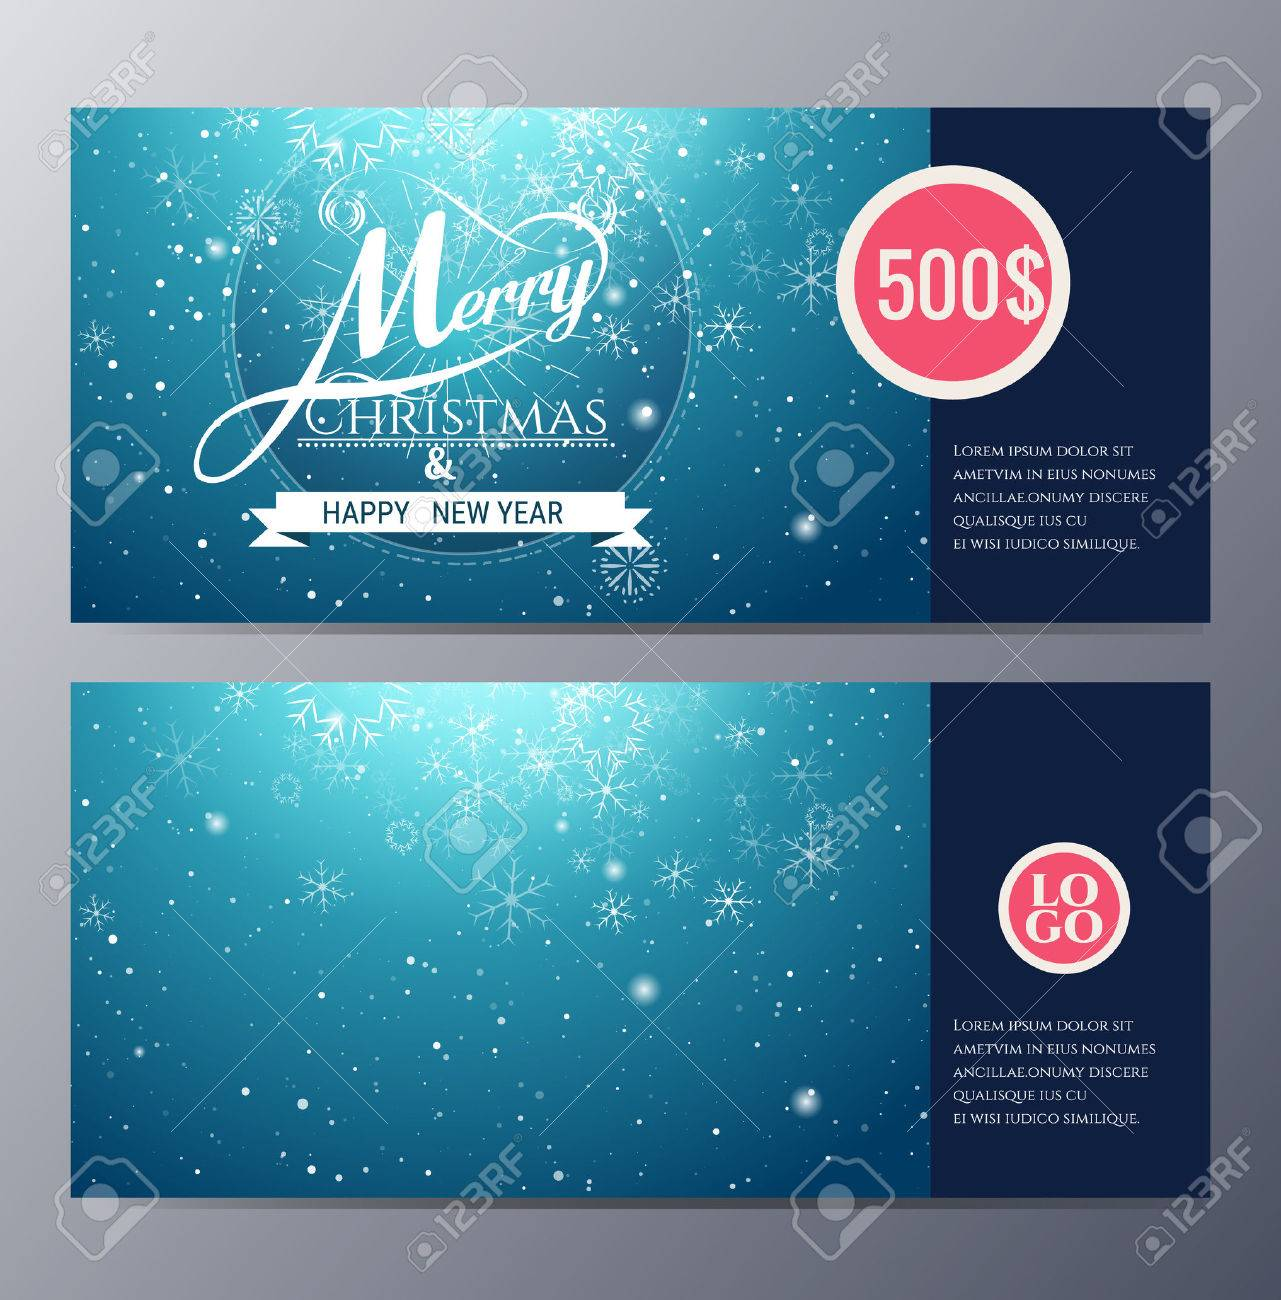 christmas gift voucher template colorful modern style vector vector christmas gift voucher template colorful modern style vector illustration